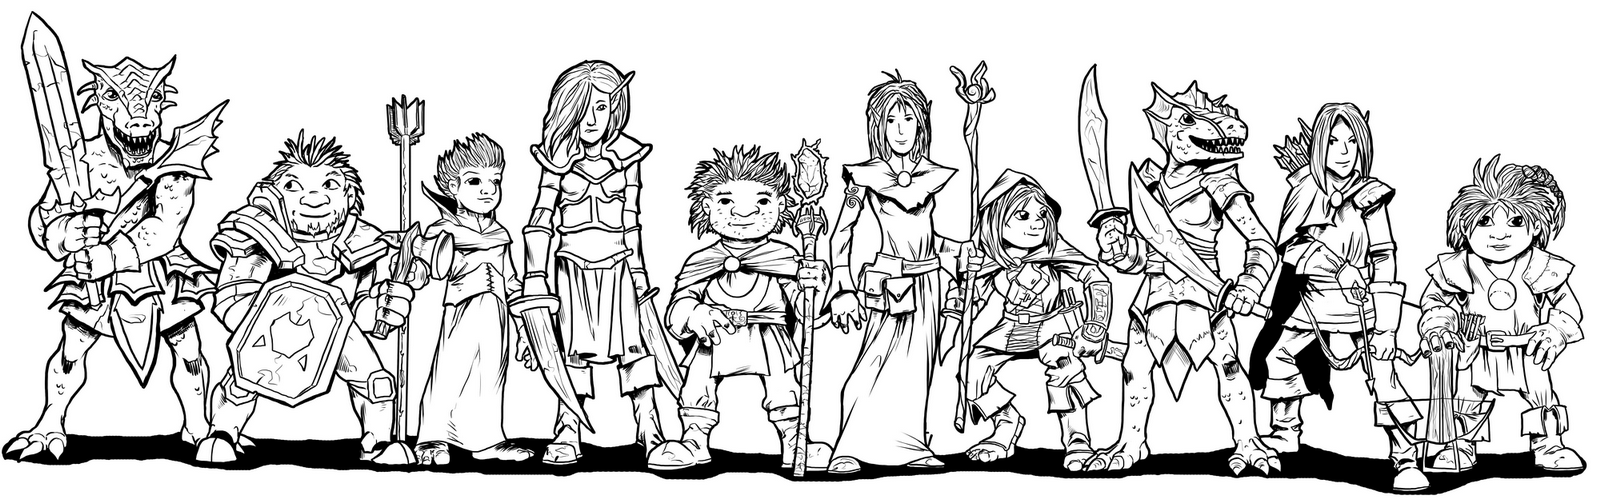 Hero_Kids_-_Hero_Line-Up_III_-_1600x500.